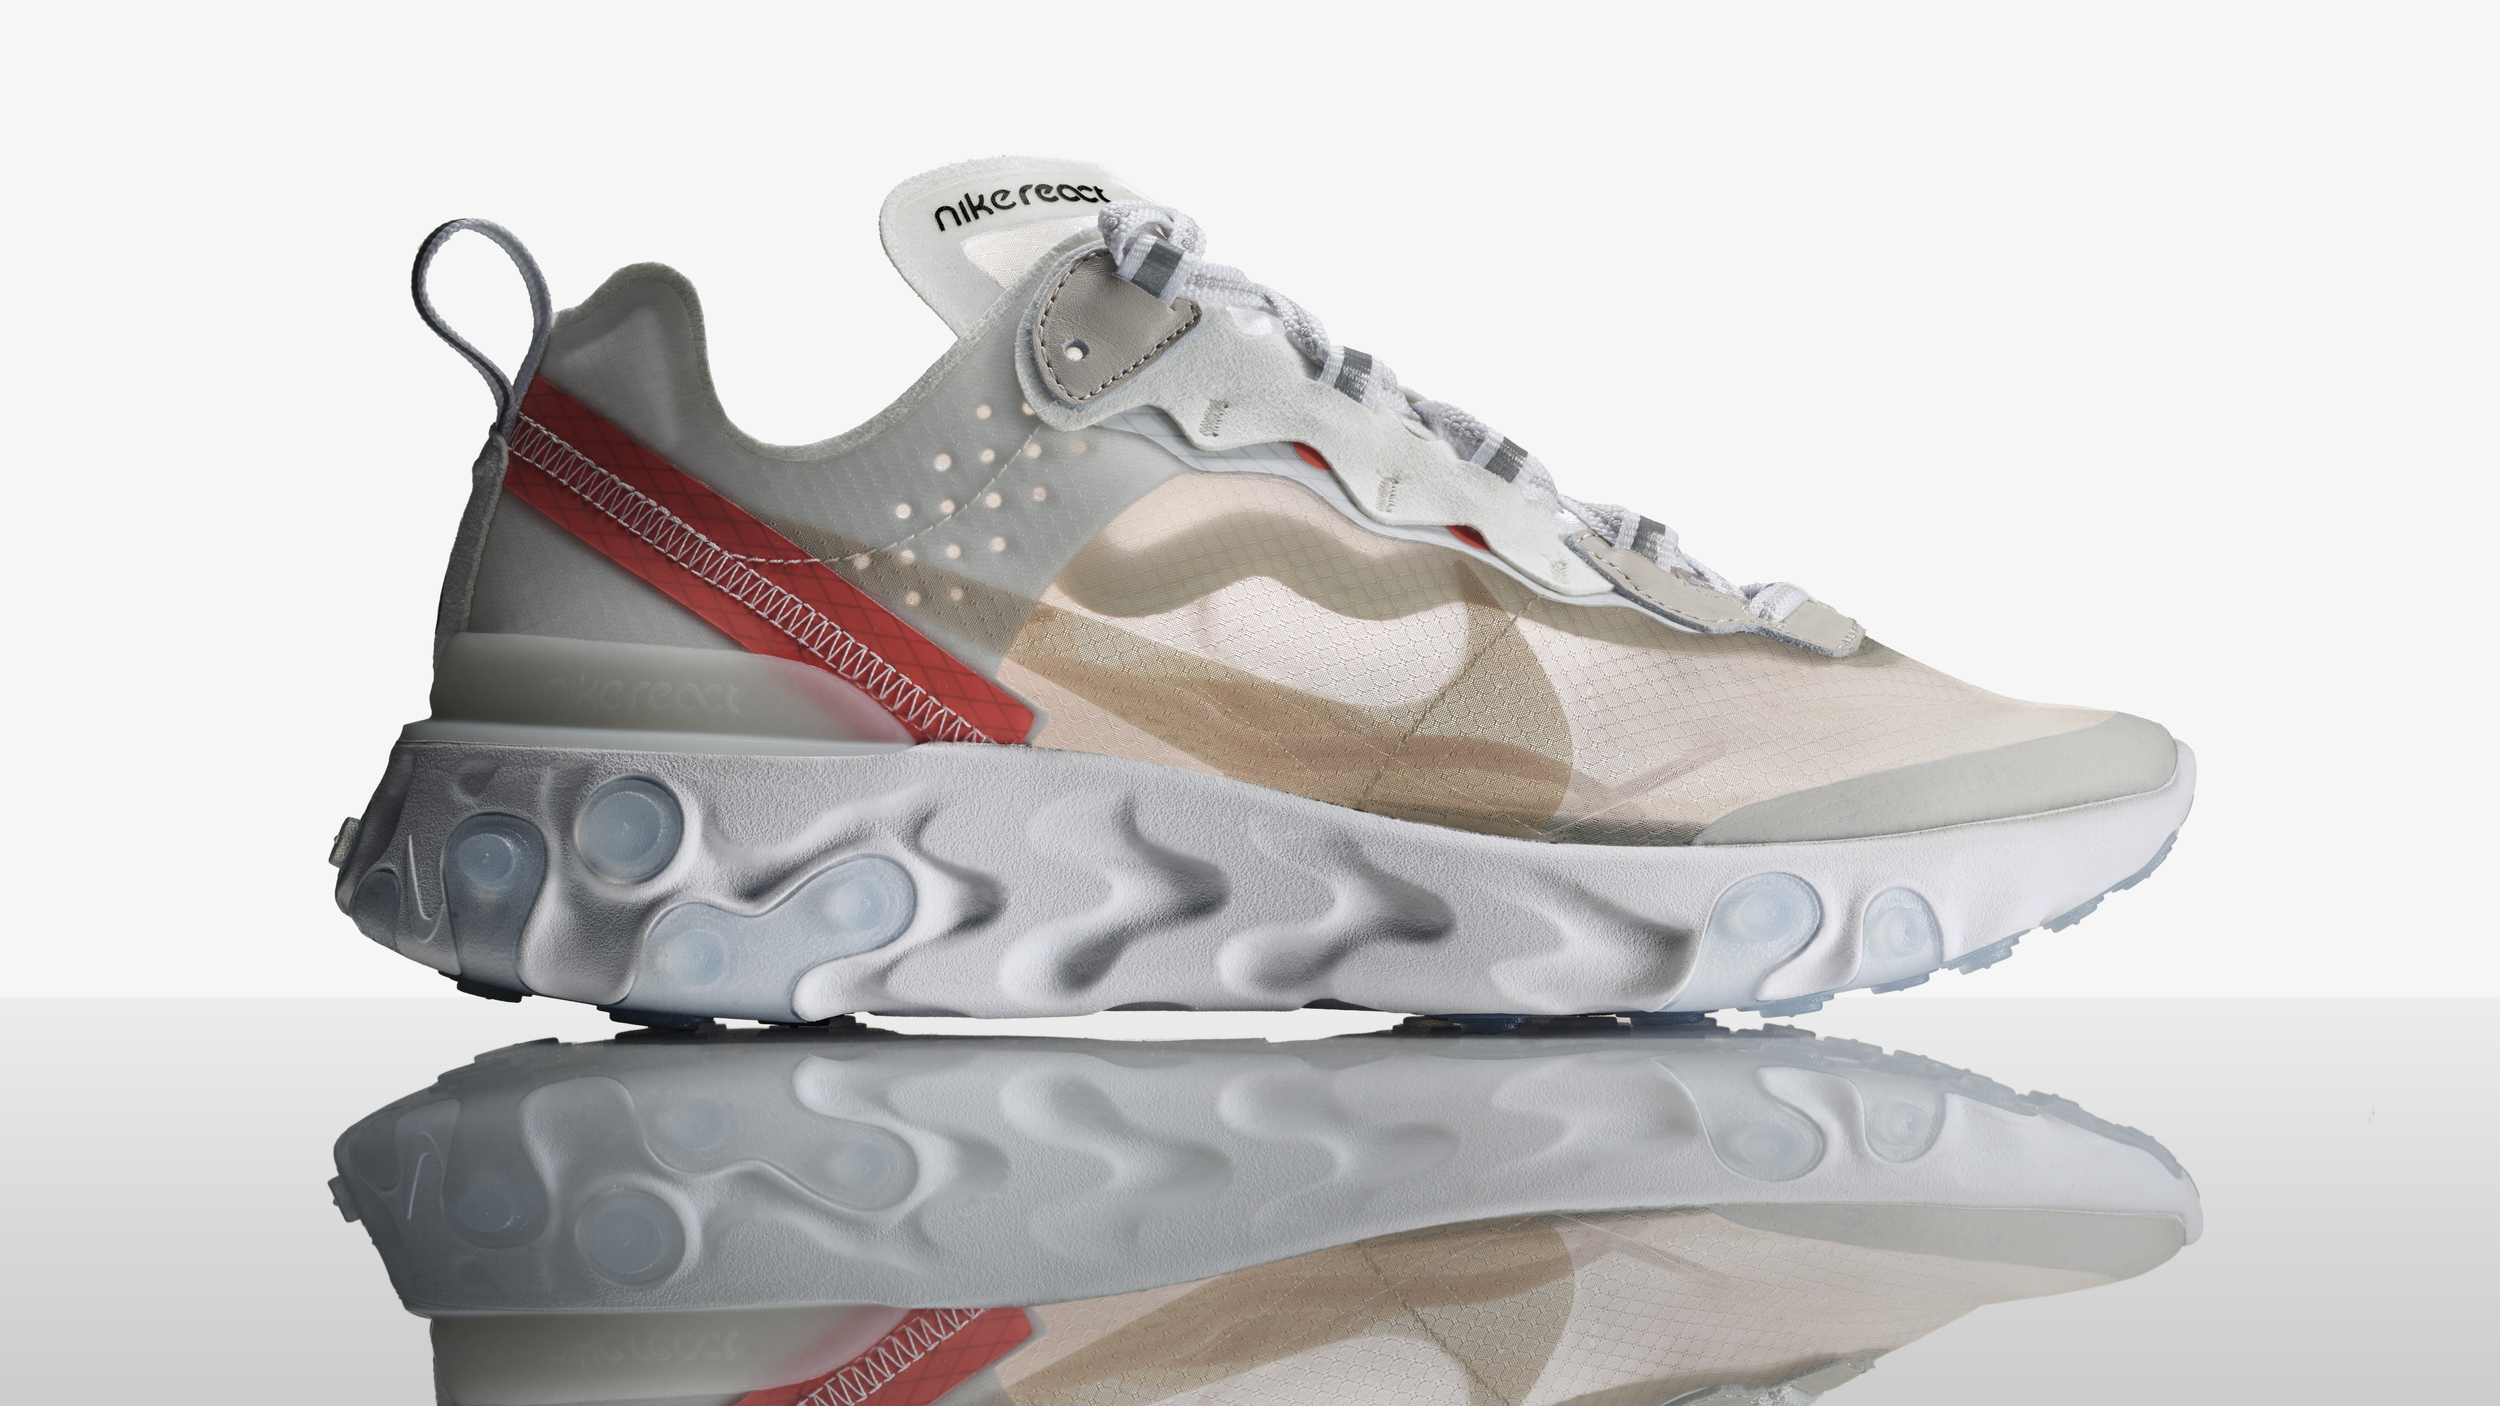 The Nike React Element 87 Won't Release